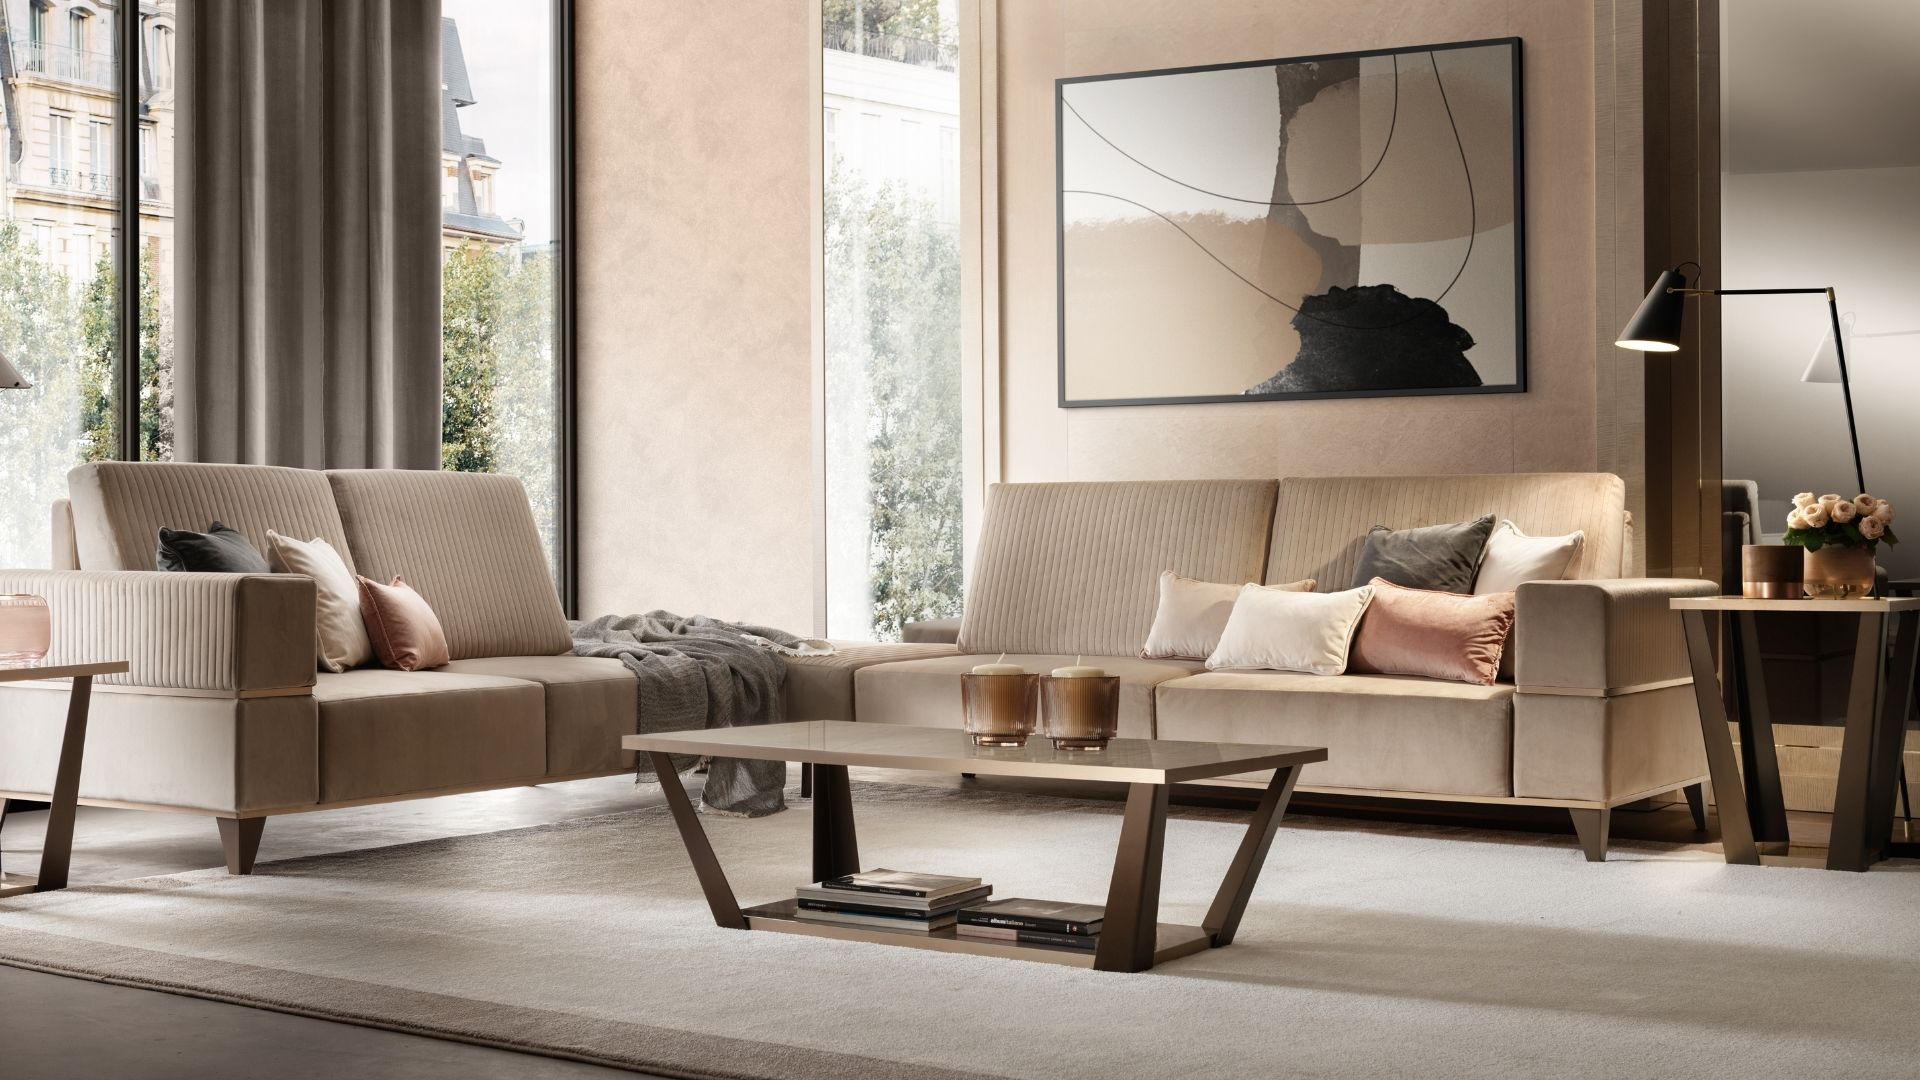 What are the most important elements of interior design in 2021?